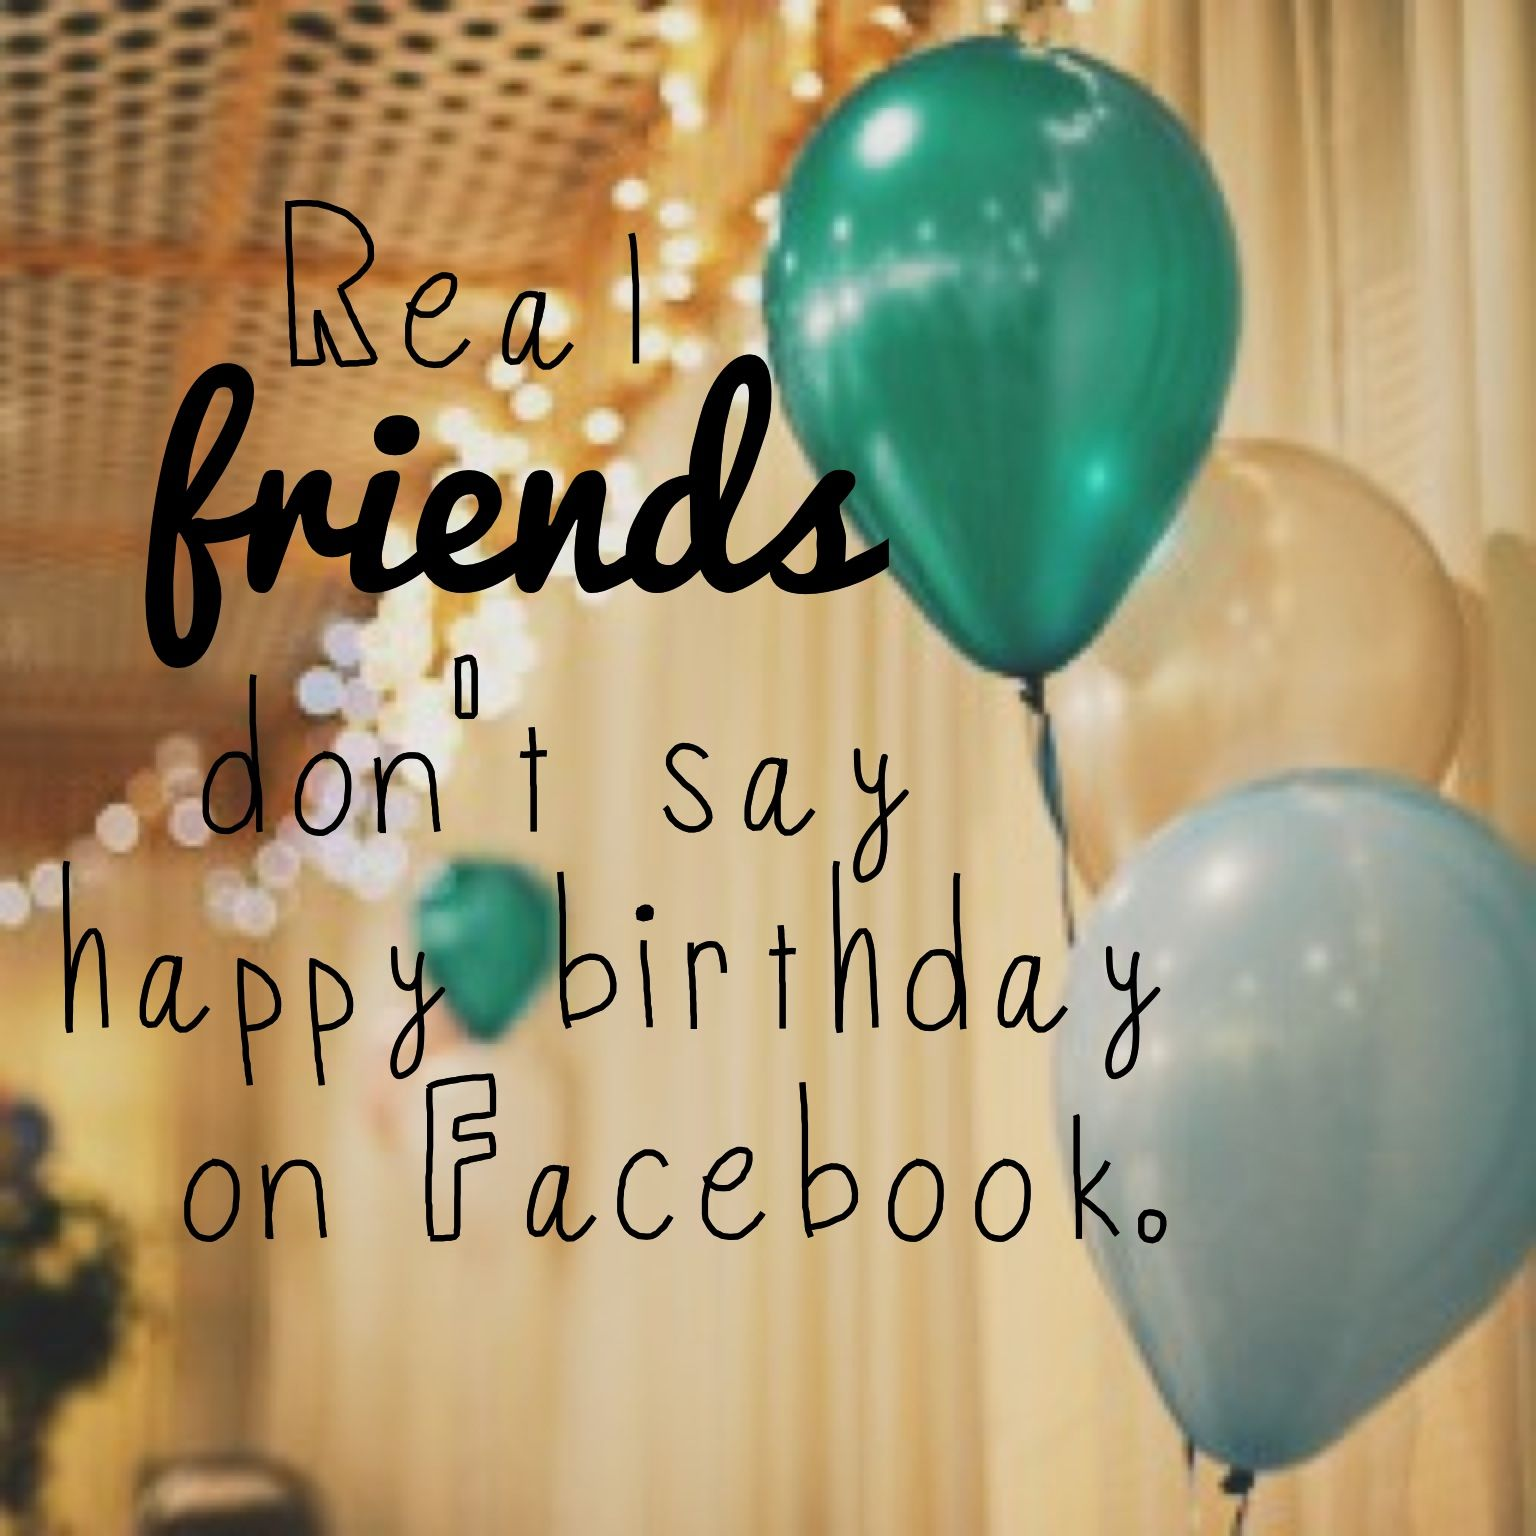 Real friends don't say happy birthday on Facebook